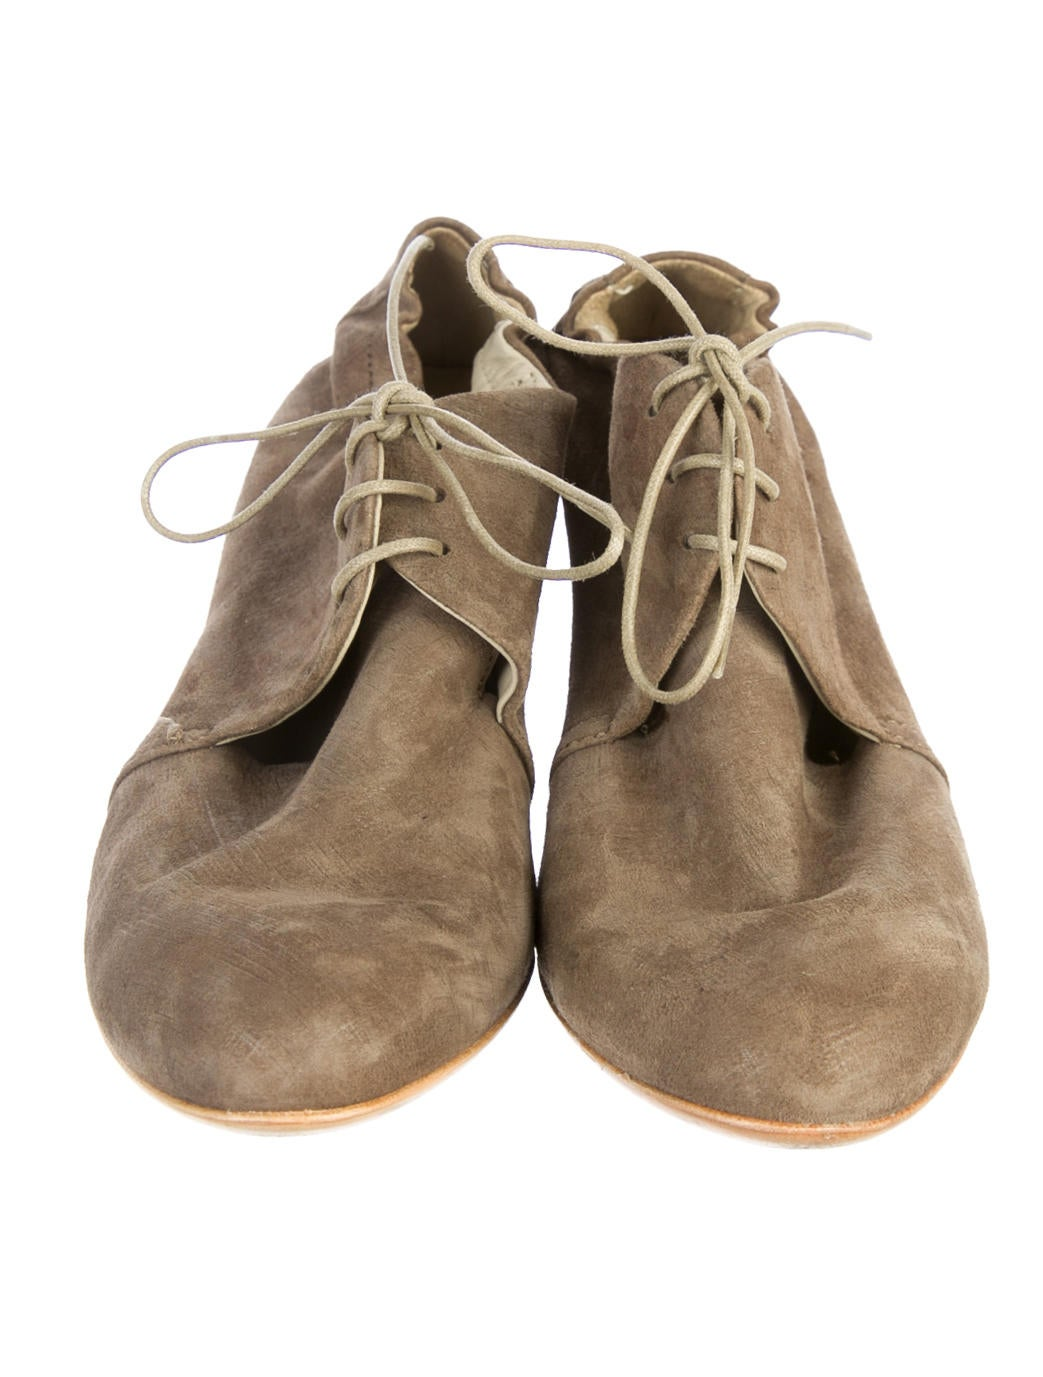 Overstock uses cookies to ensure you get the best experience on our site. If you continue on our site, you consent to the use of such cookies. Learn more. OK Women's Booties. Clothing & Shoes / Shoes / Journee Collection Women's 'Enter' Faux Suede Wedge Booties. 77 Reviews.